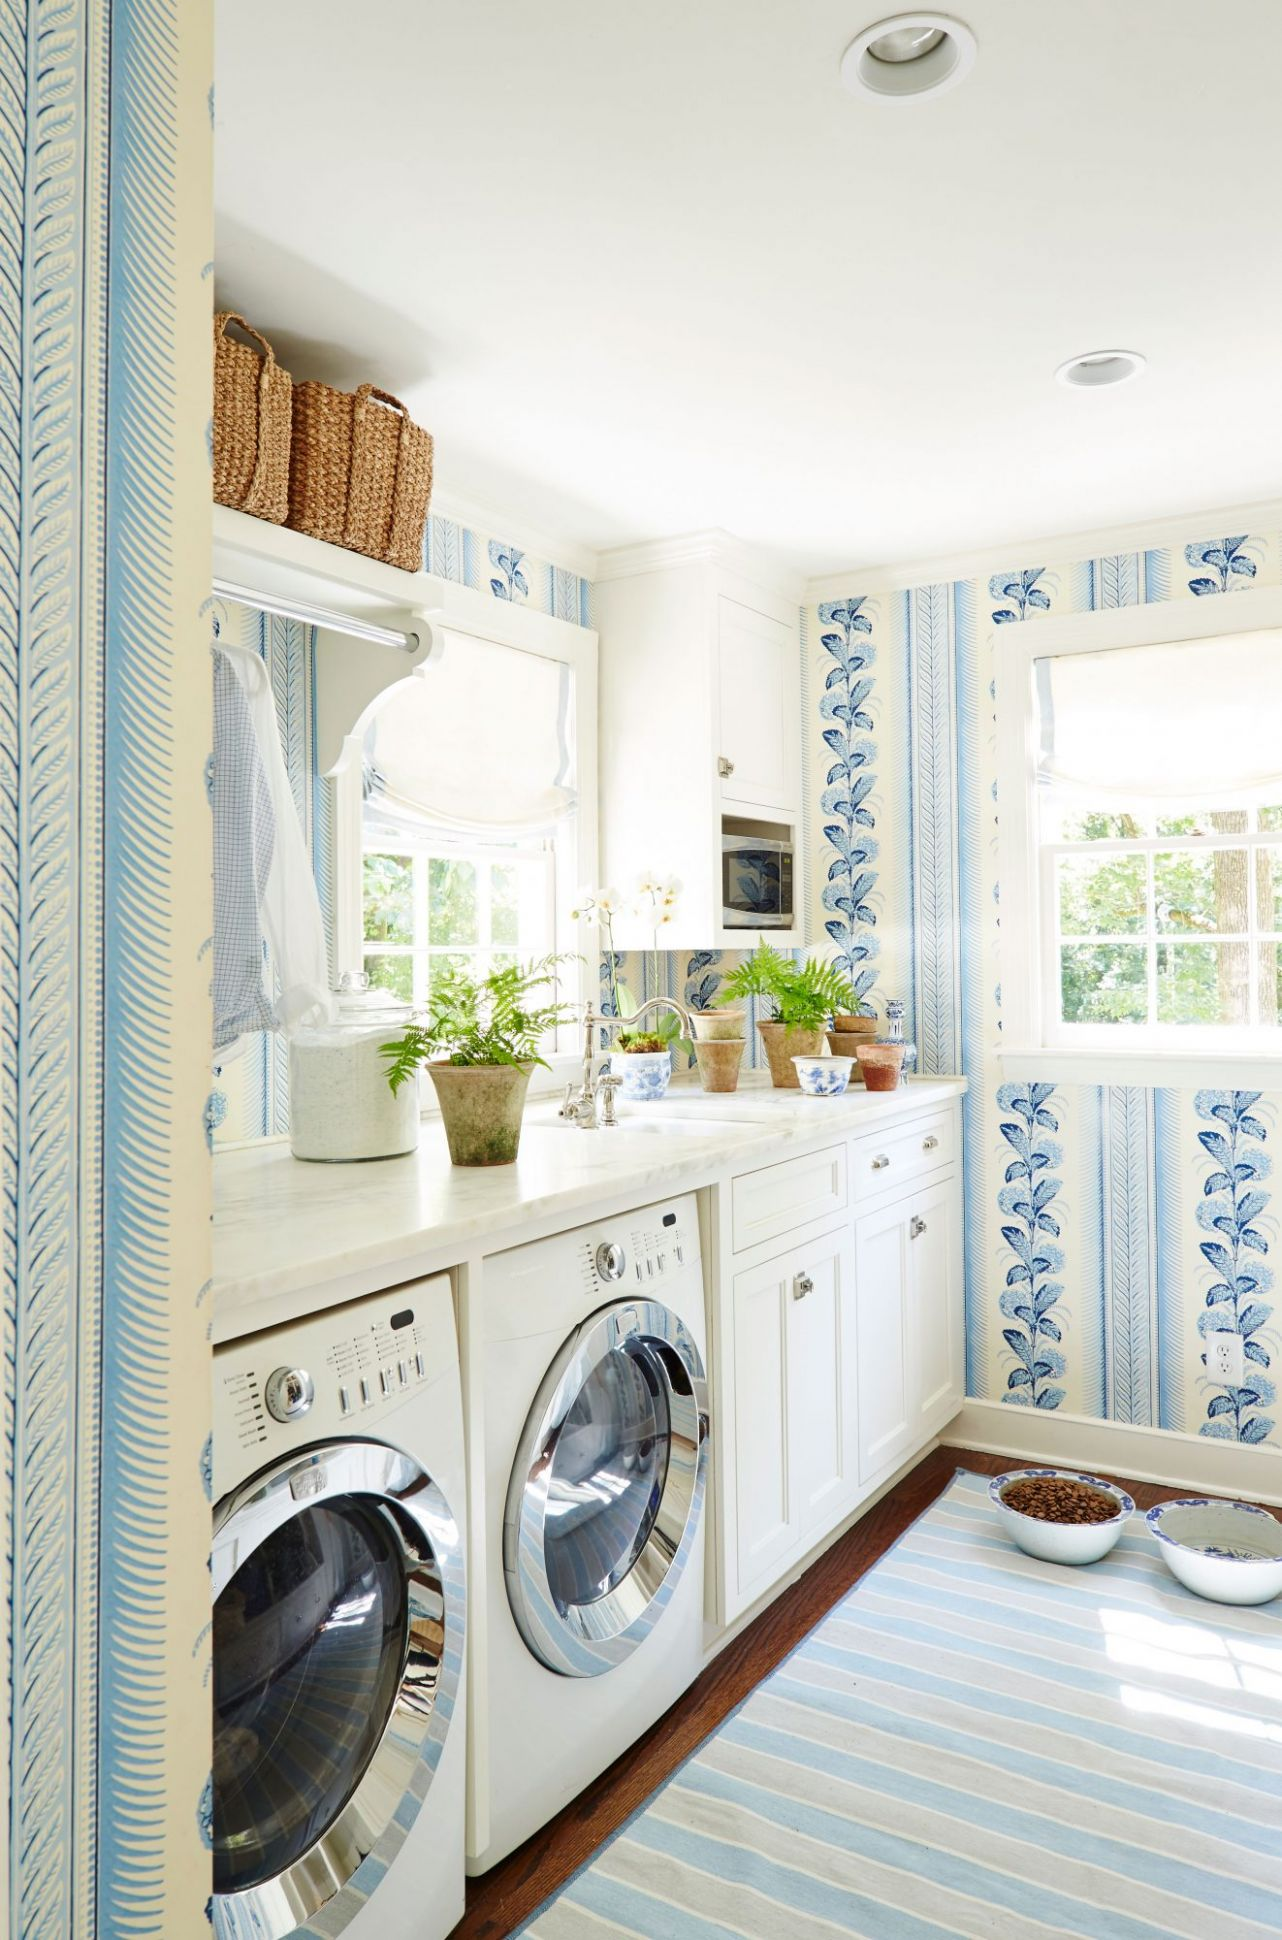 12 Laundry Room Ideas We're Obsessed With | Southern Living